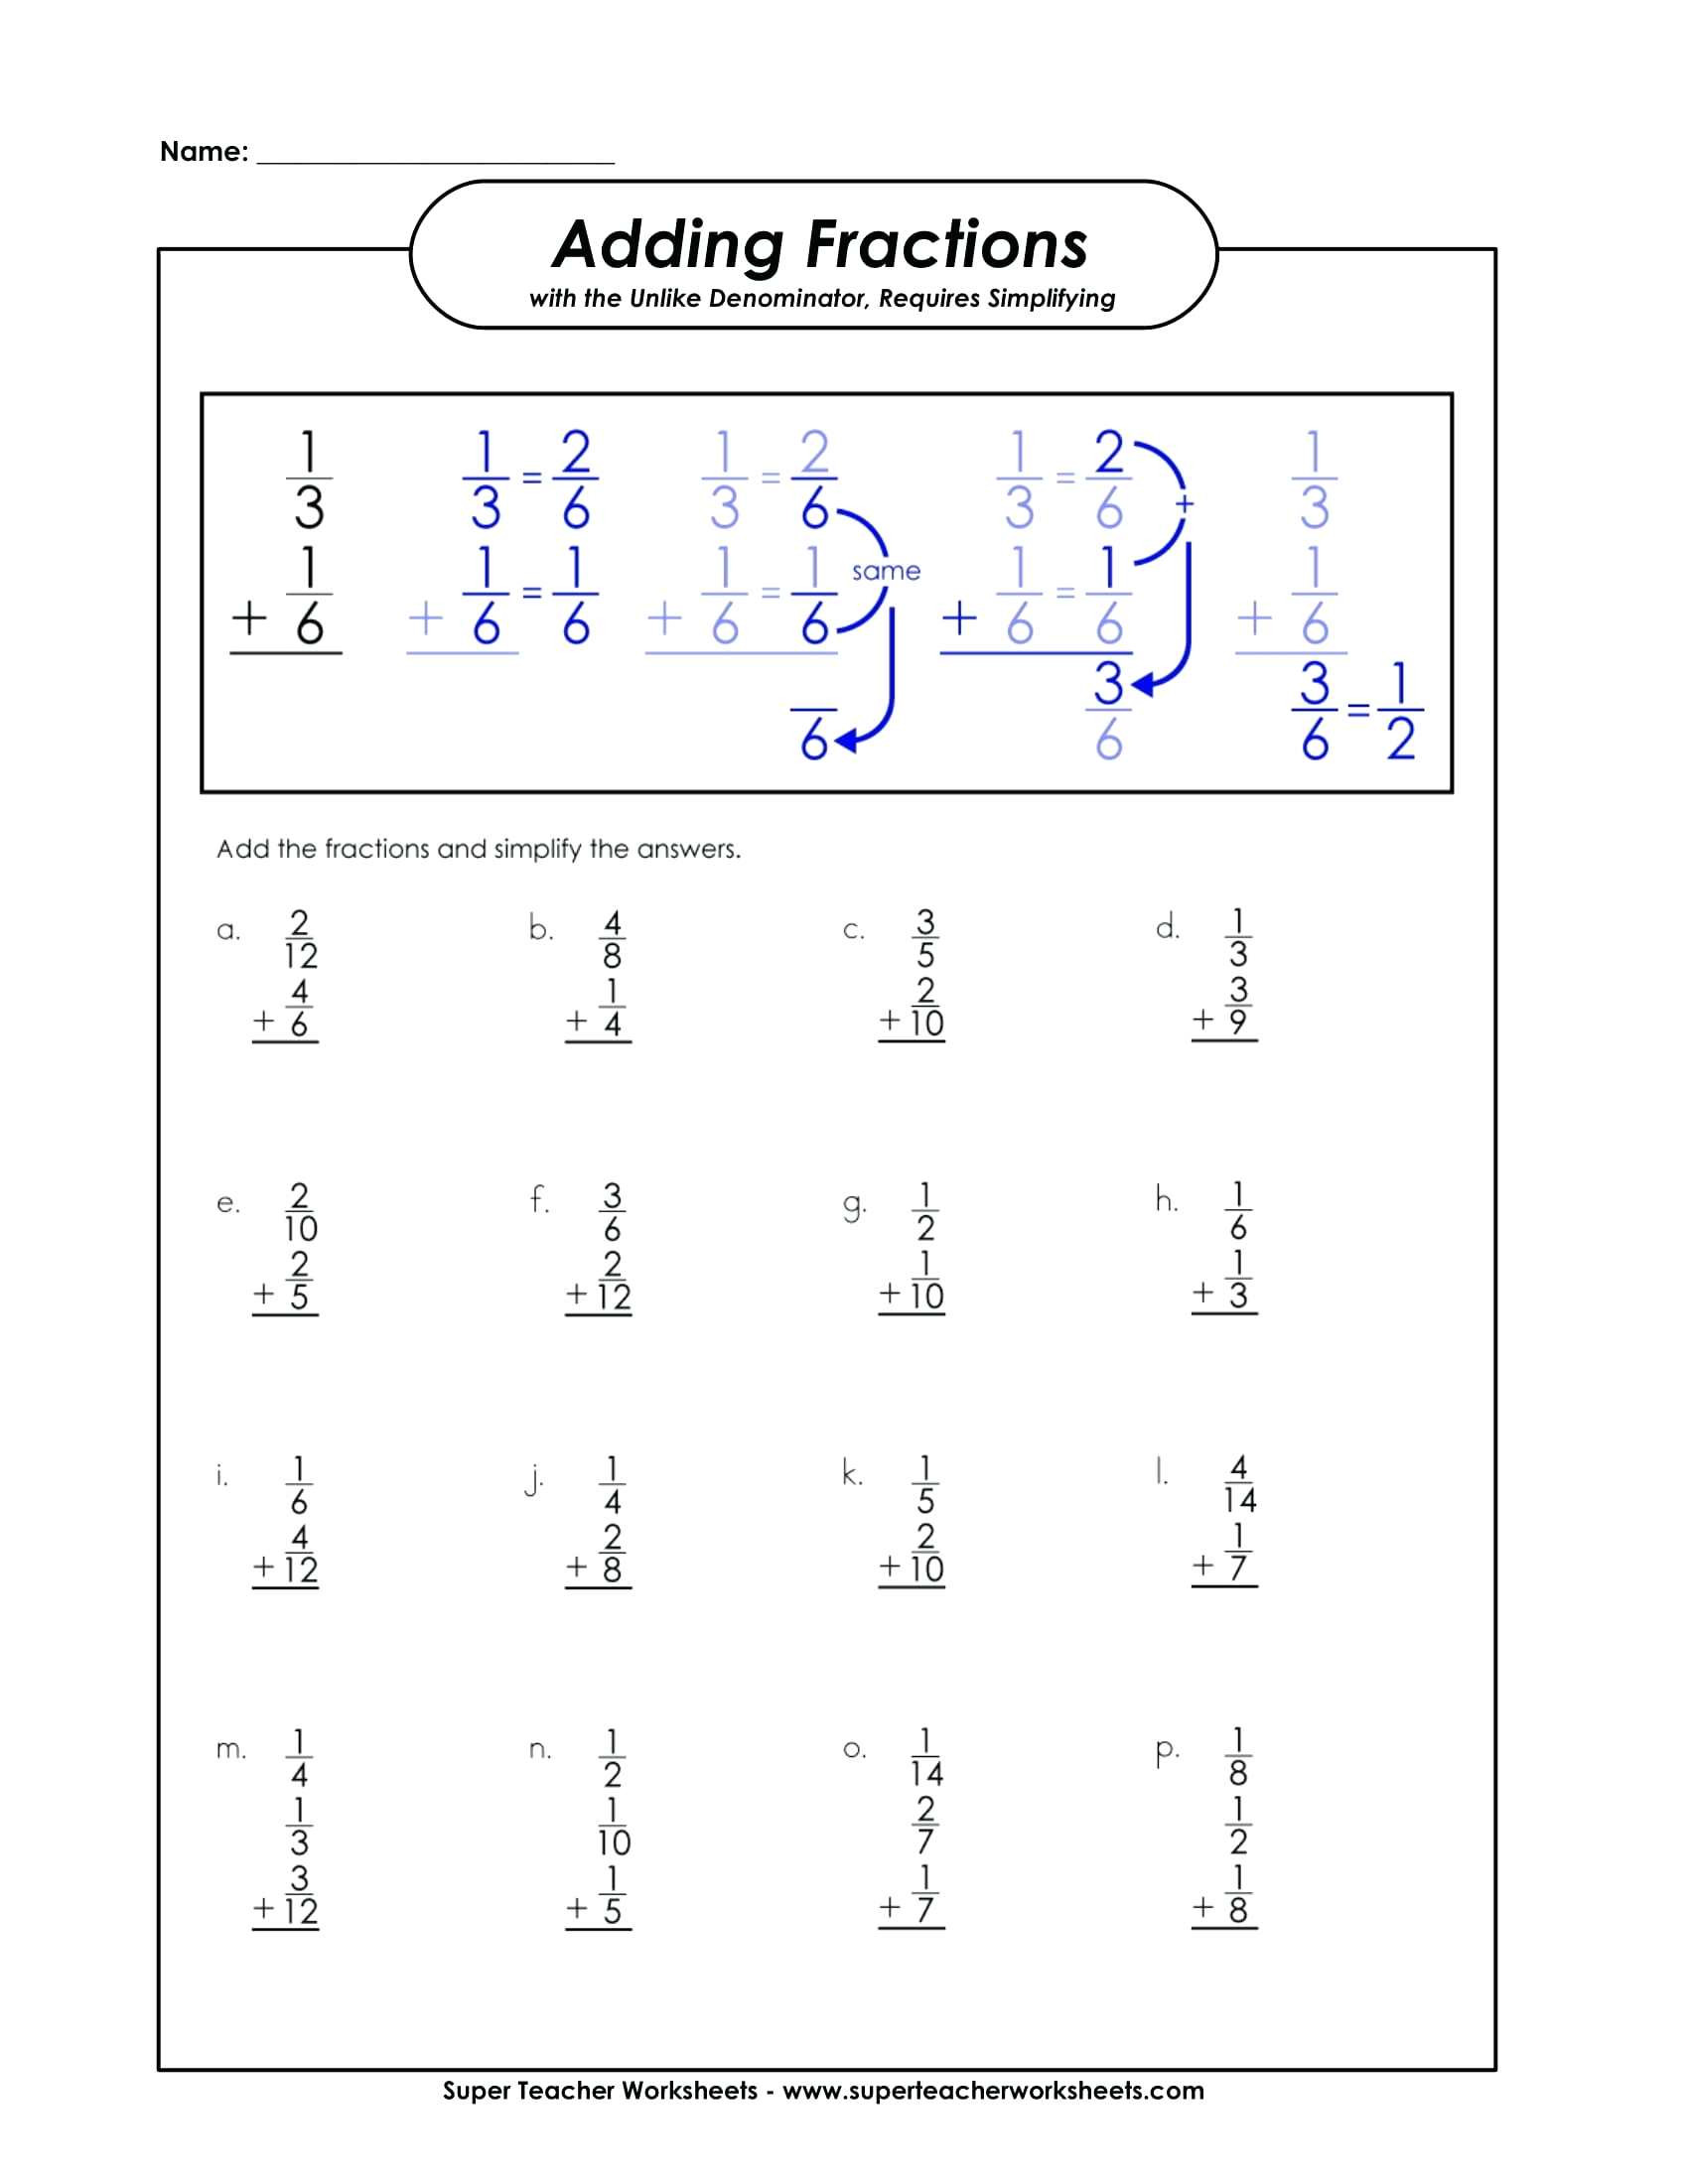 Fractions Worksheets Grade 4 Pdf Adding Fractions Worksheet Super Teacher Worksheets